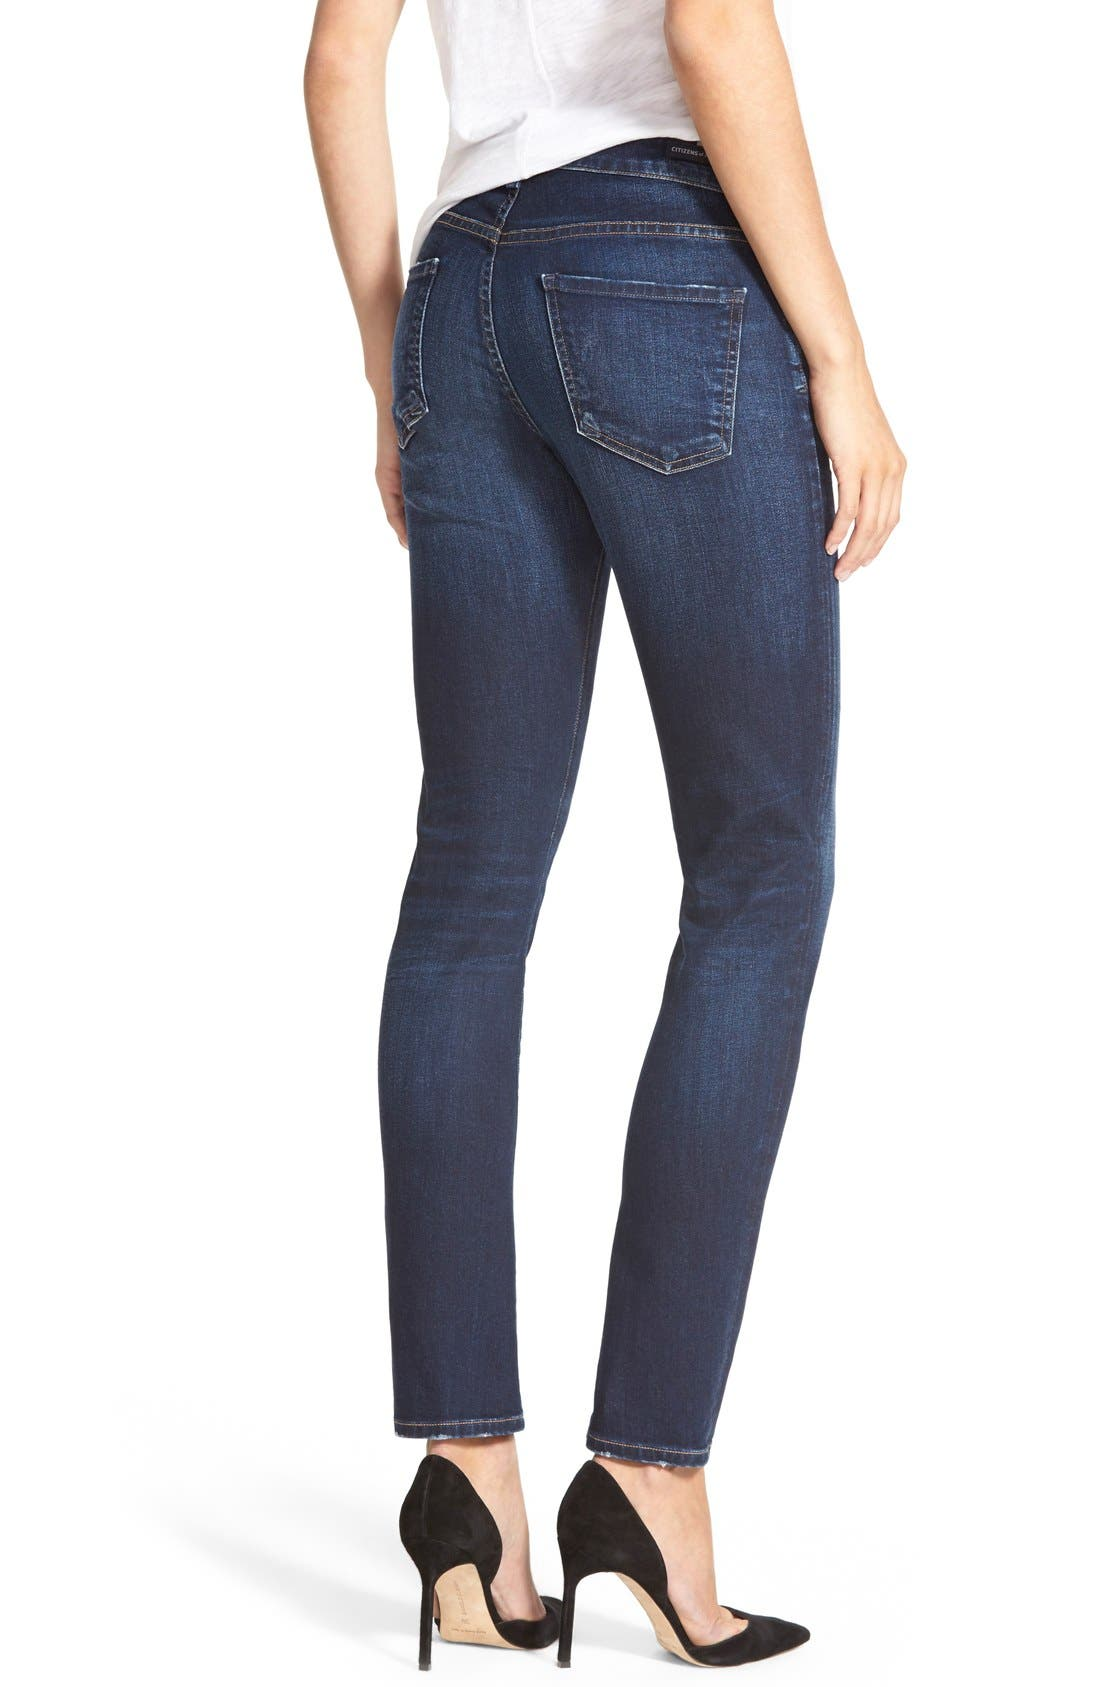 Alternate Image 3  - Citizens of Humanity 'Arielle' Mid Rise Slim Jeans (Starlite)